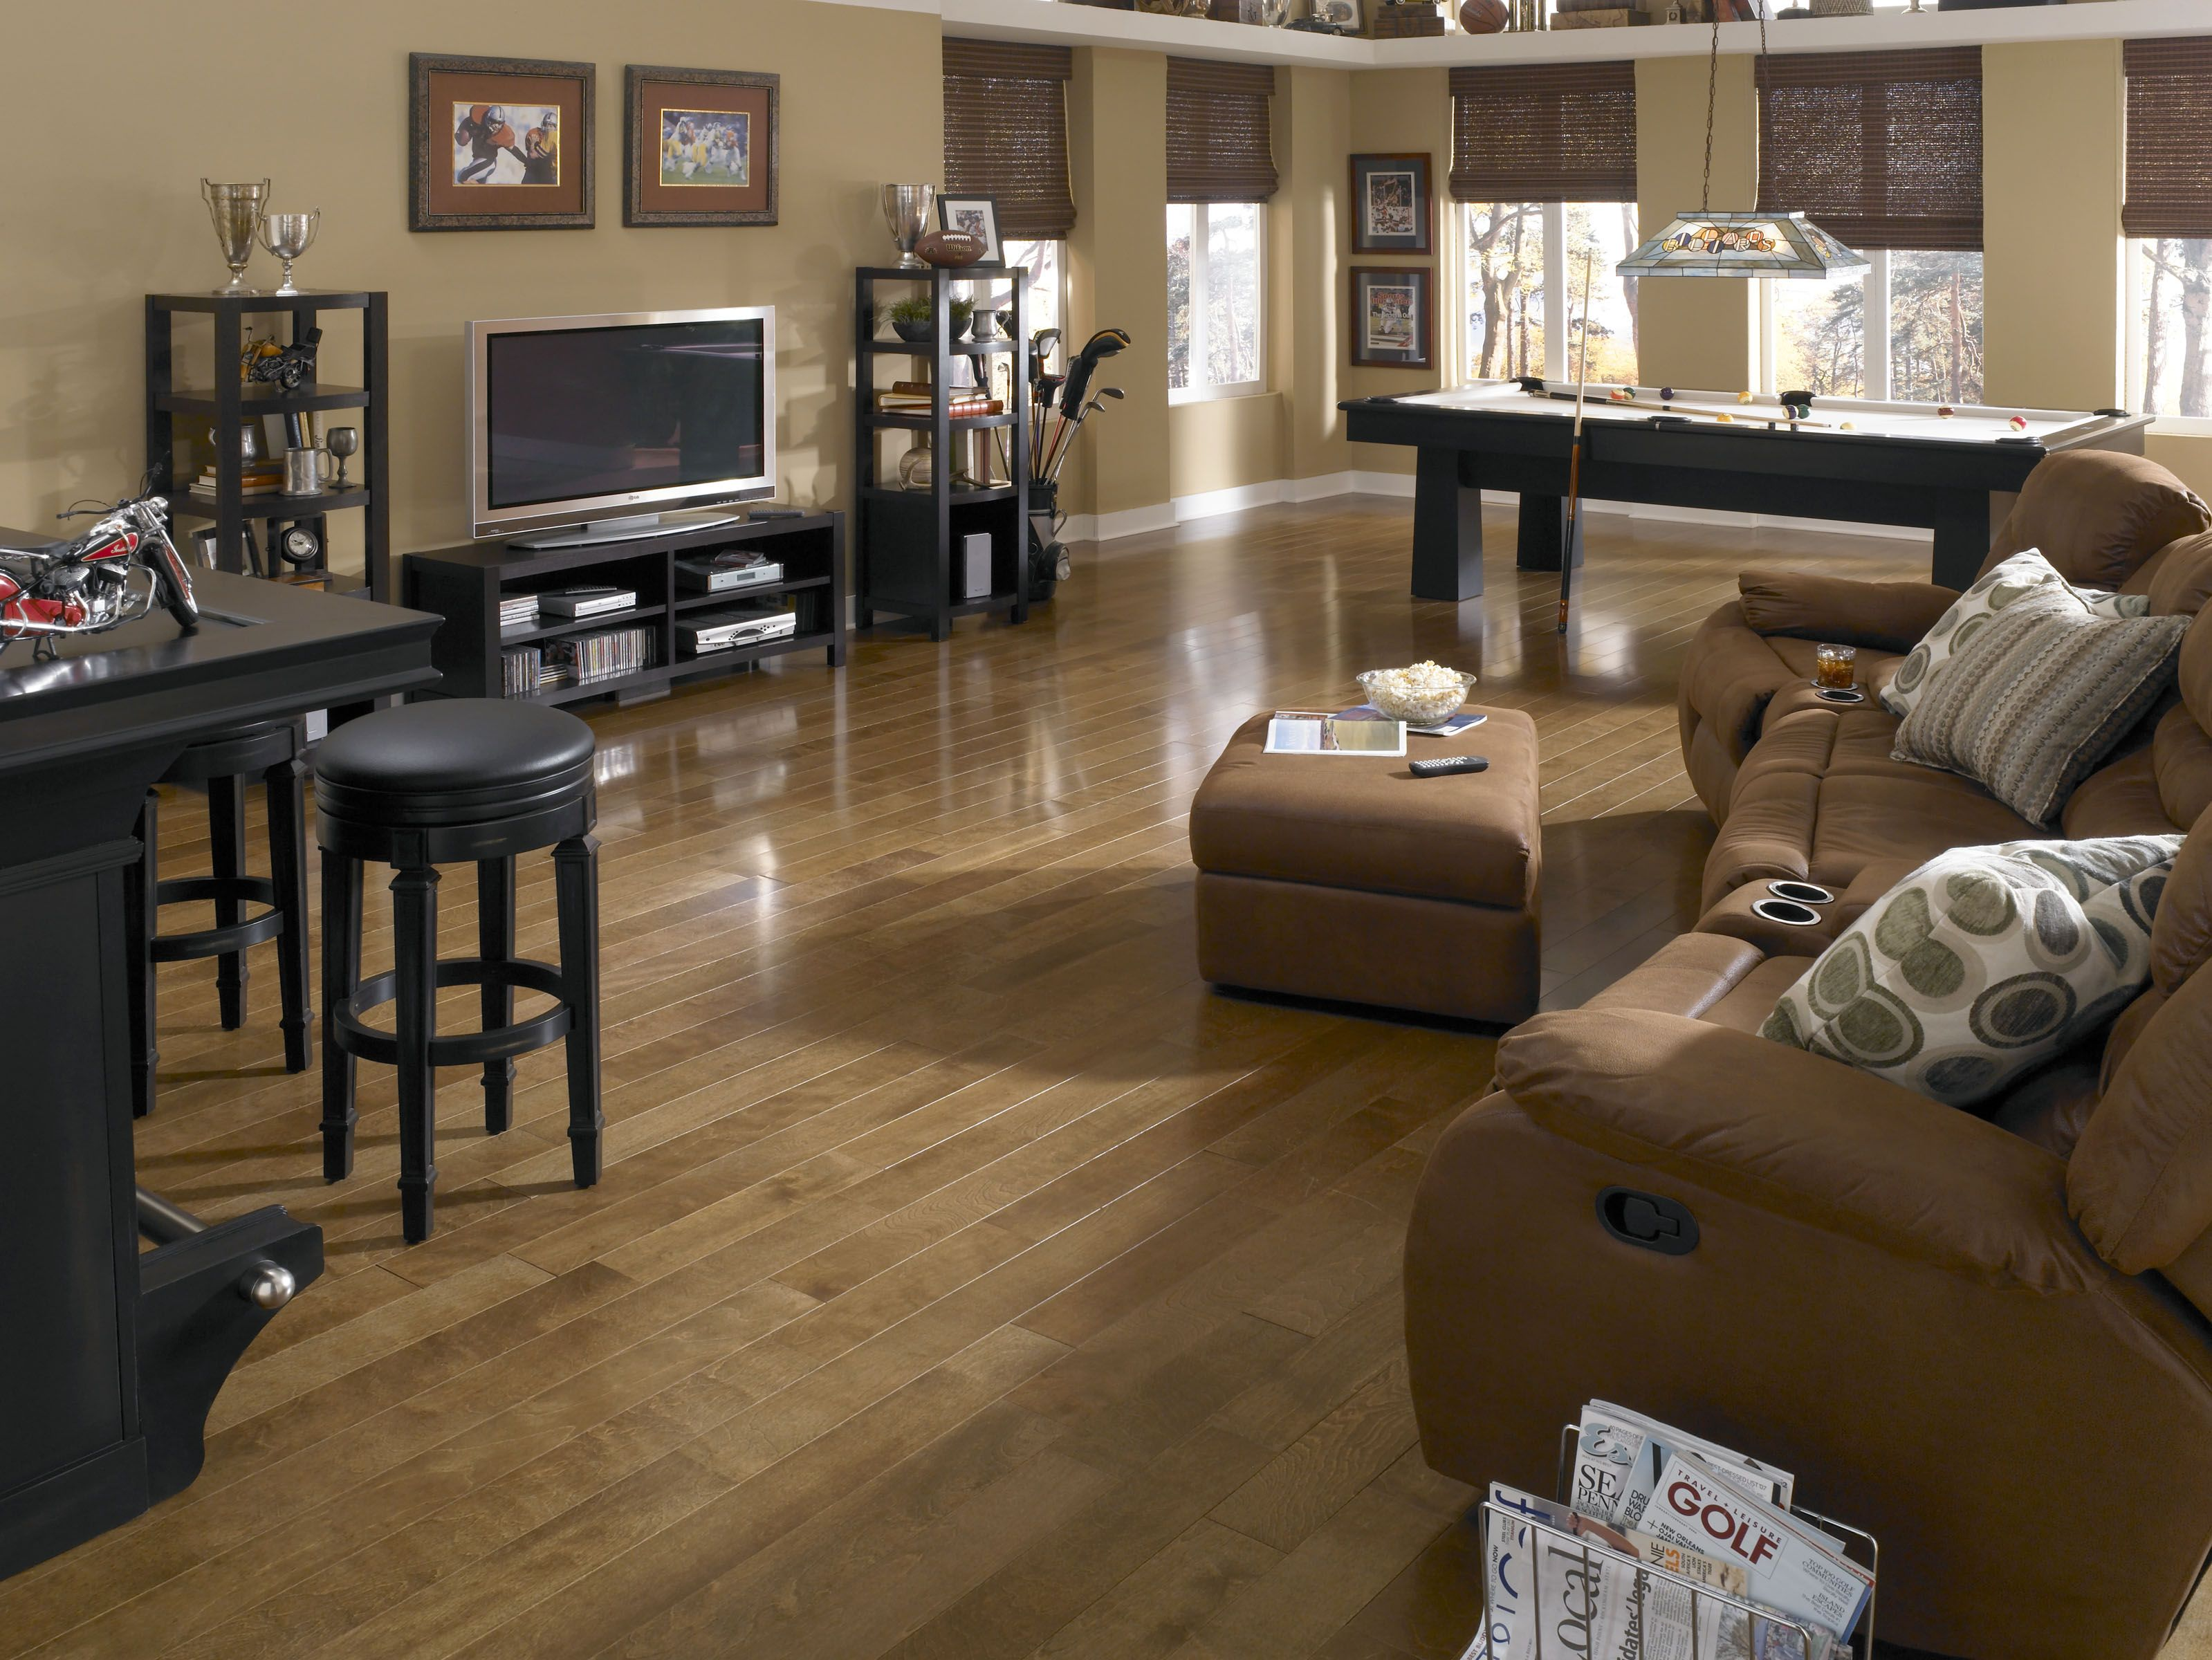 HARDWOOD U0026 LAMINATE OVERSTOCK CLEARANCE! Barton Carpet U0026 Floor Covering  Outlet 47 W. Browning